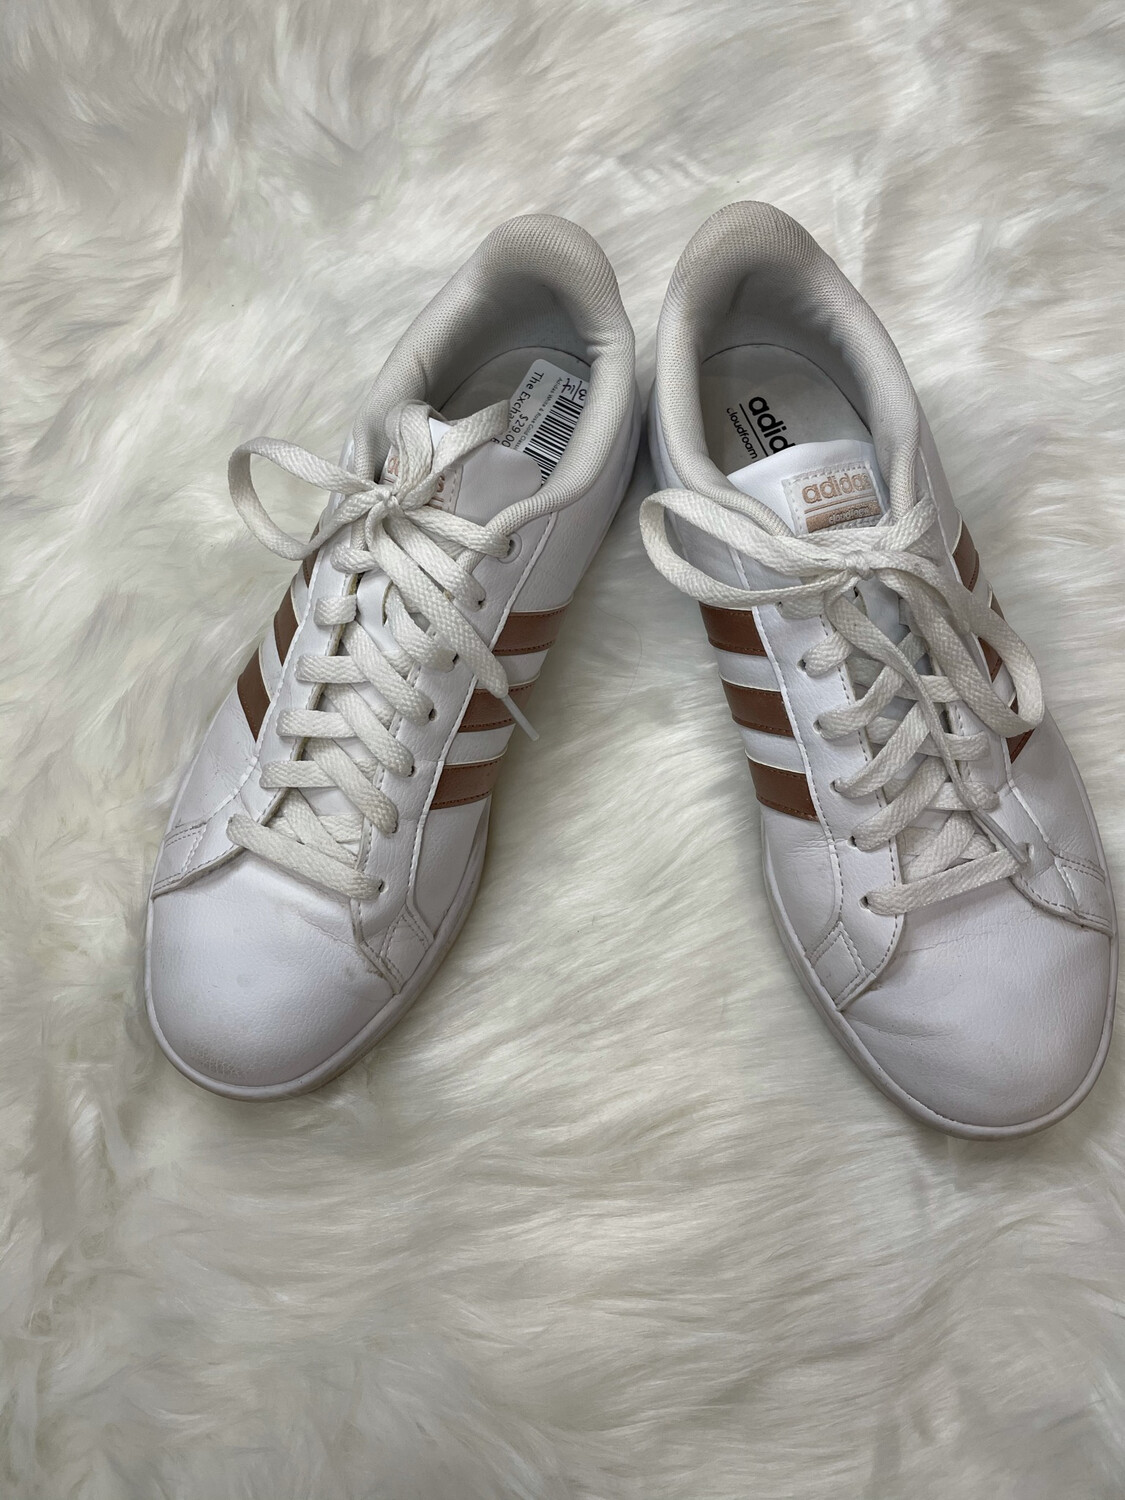 Adidas White & Rose Gold Classic Sneakers - Size 10